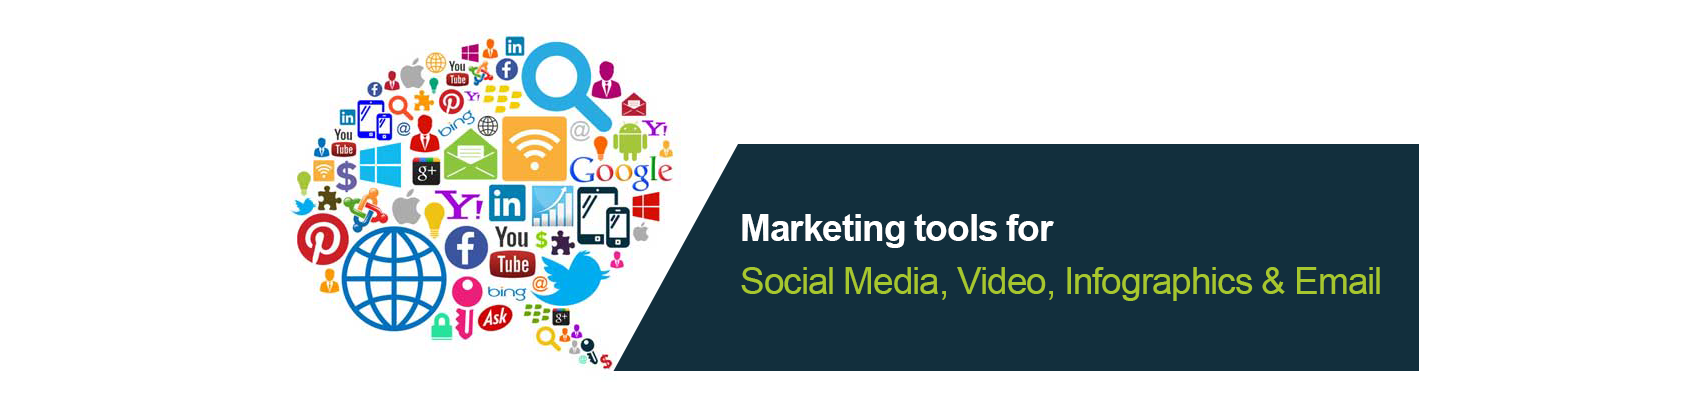 Marketing tools for Social Media, Video, Infographics & Email